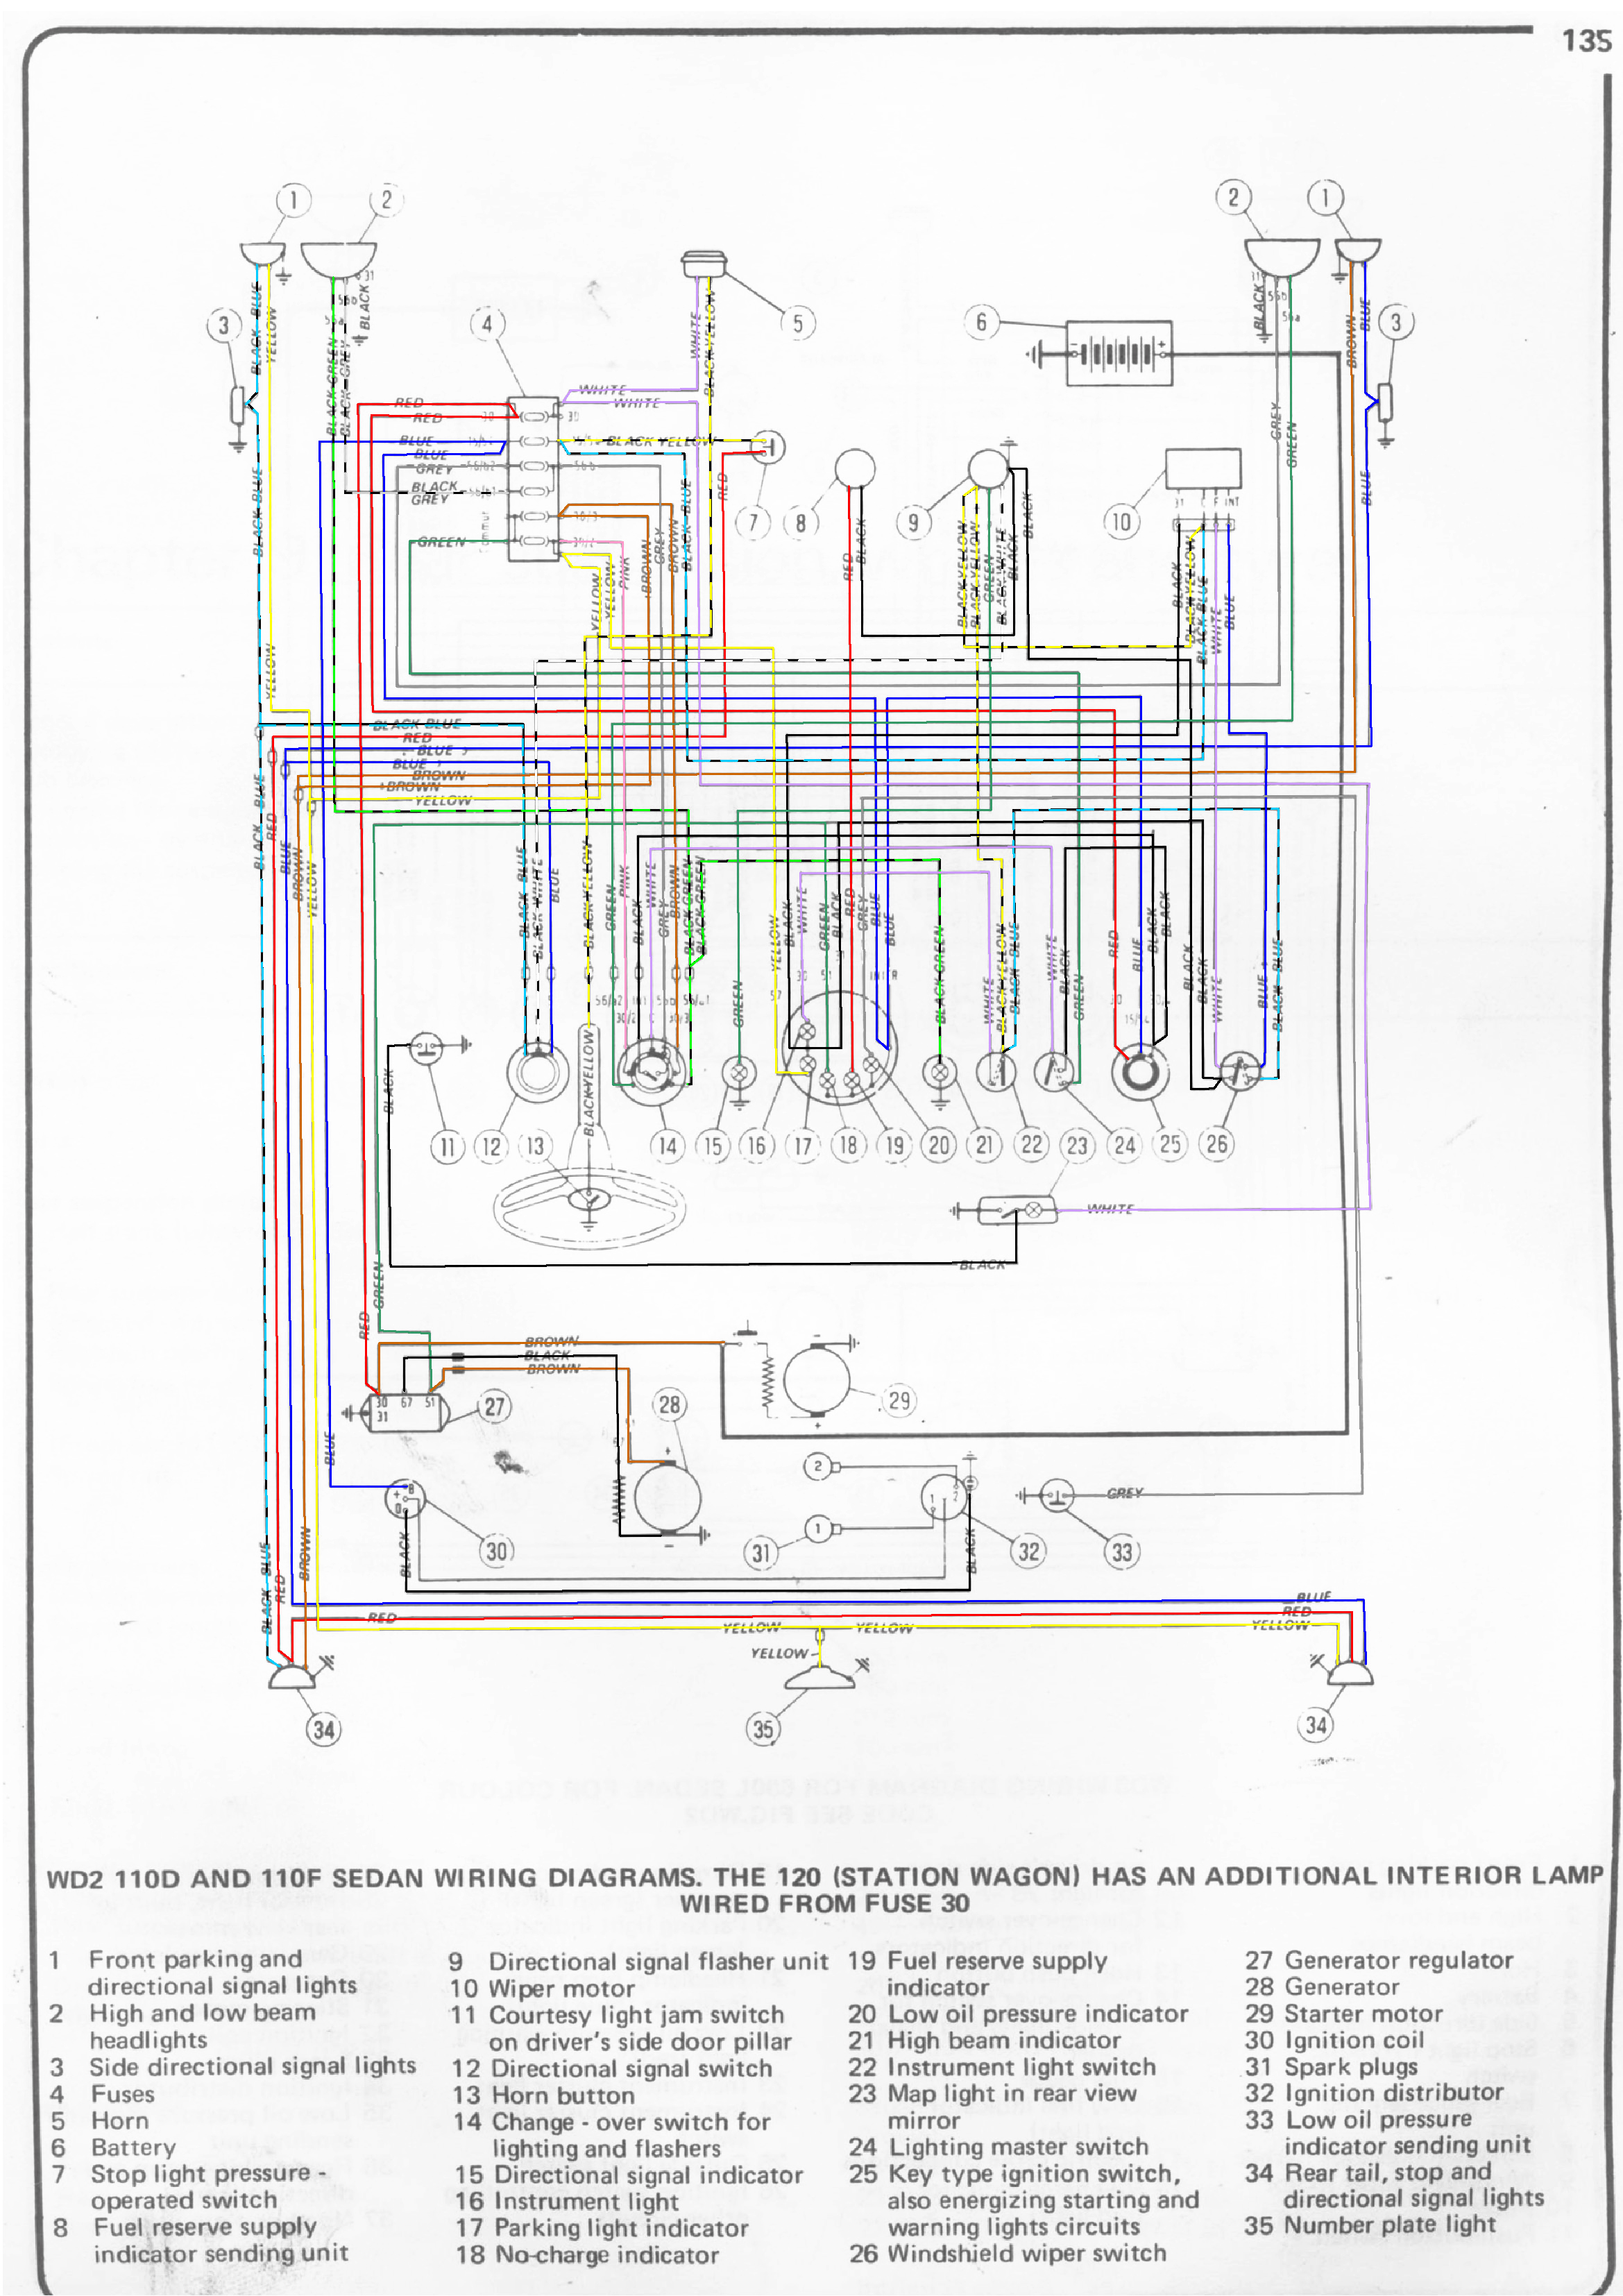 medium resolution of fiat 500l wiring harness fiat 500 ferrari edition wiring 2012 fiat 500 wiring diagram fiat 124